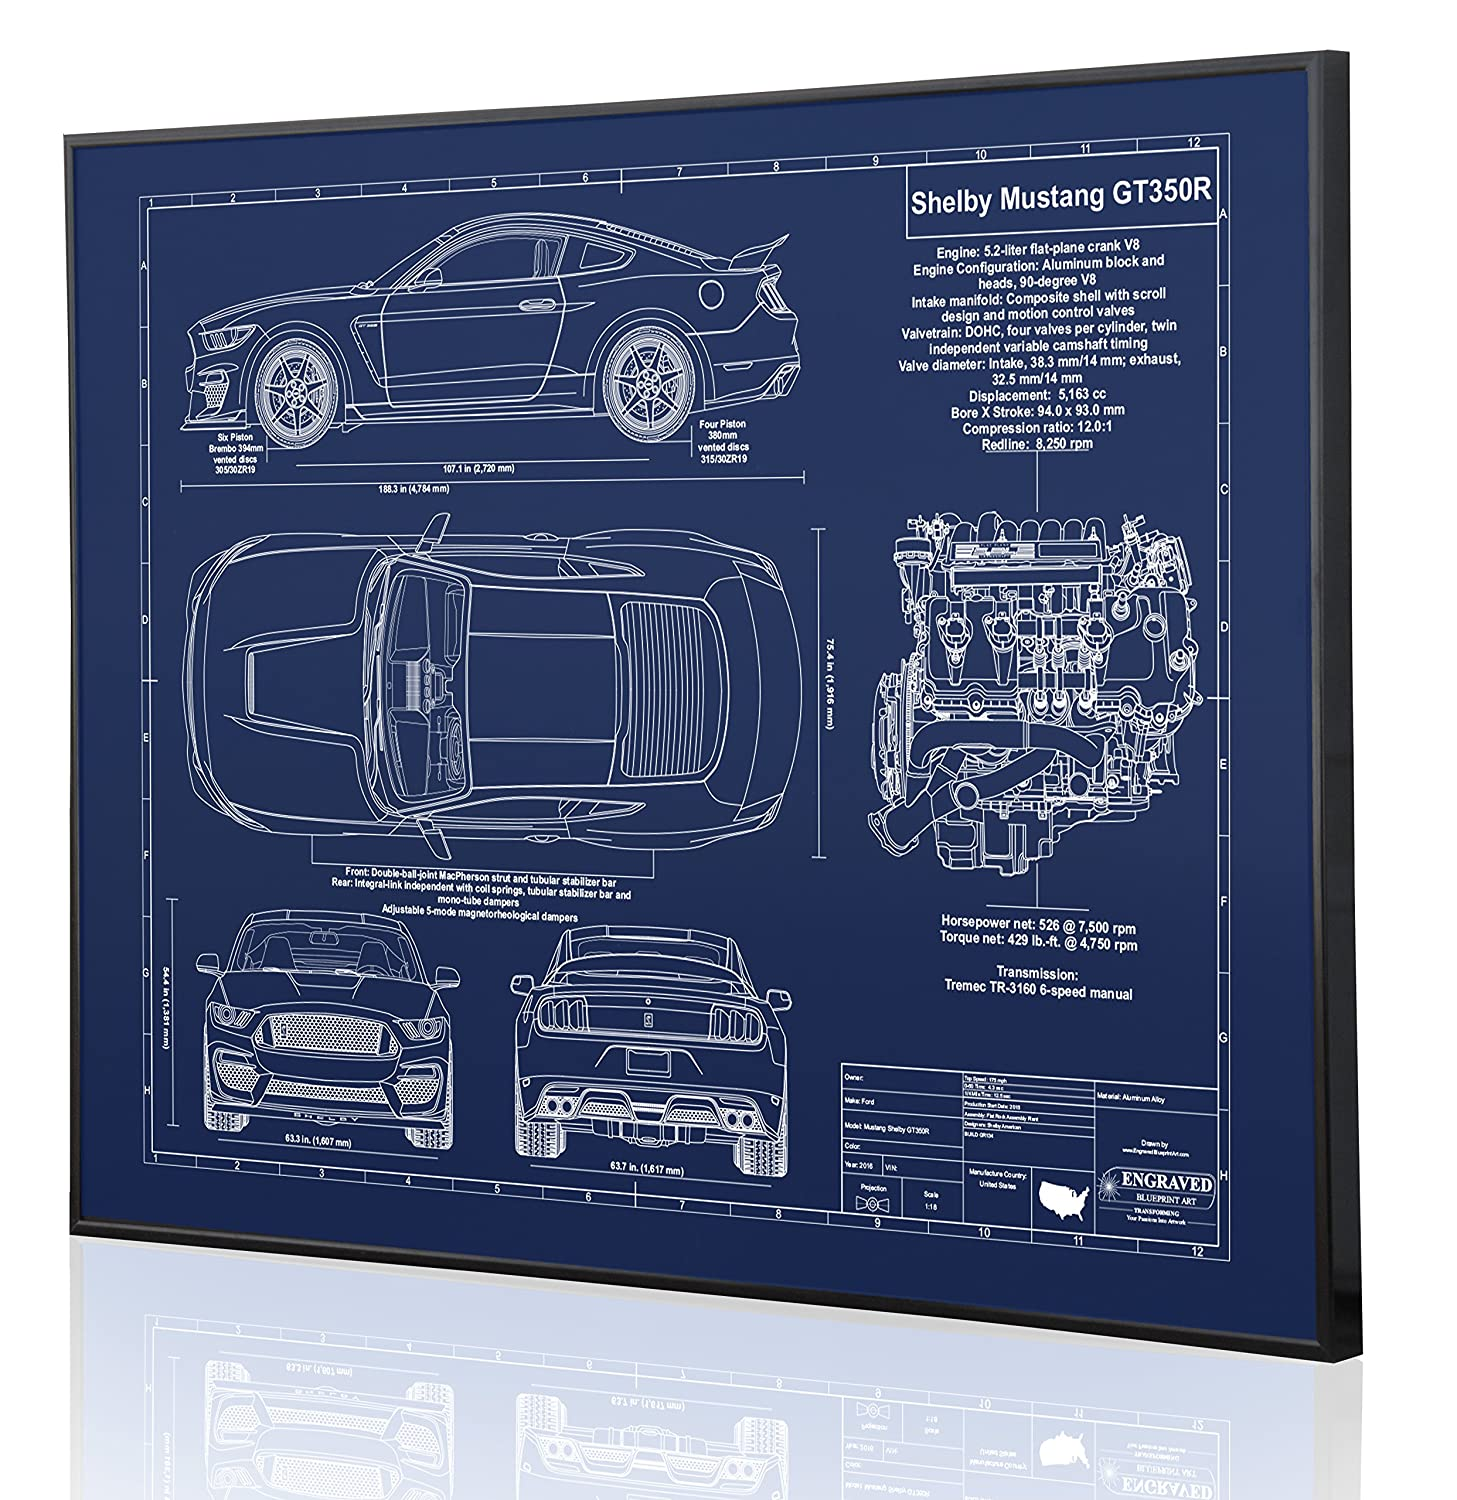 Amazon.com: Shelby Mustang GT350R Blueprint Artwork-Laser Marked &  Personalized-The Perfect Ford Gifts: Handmade